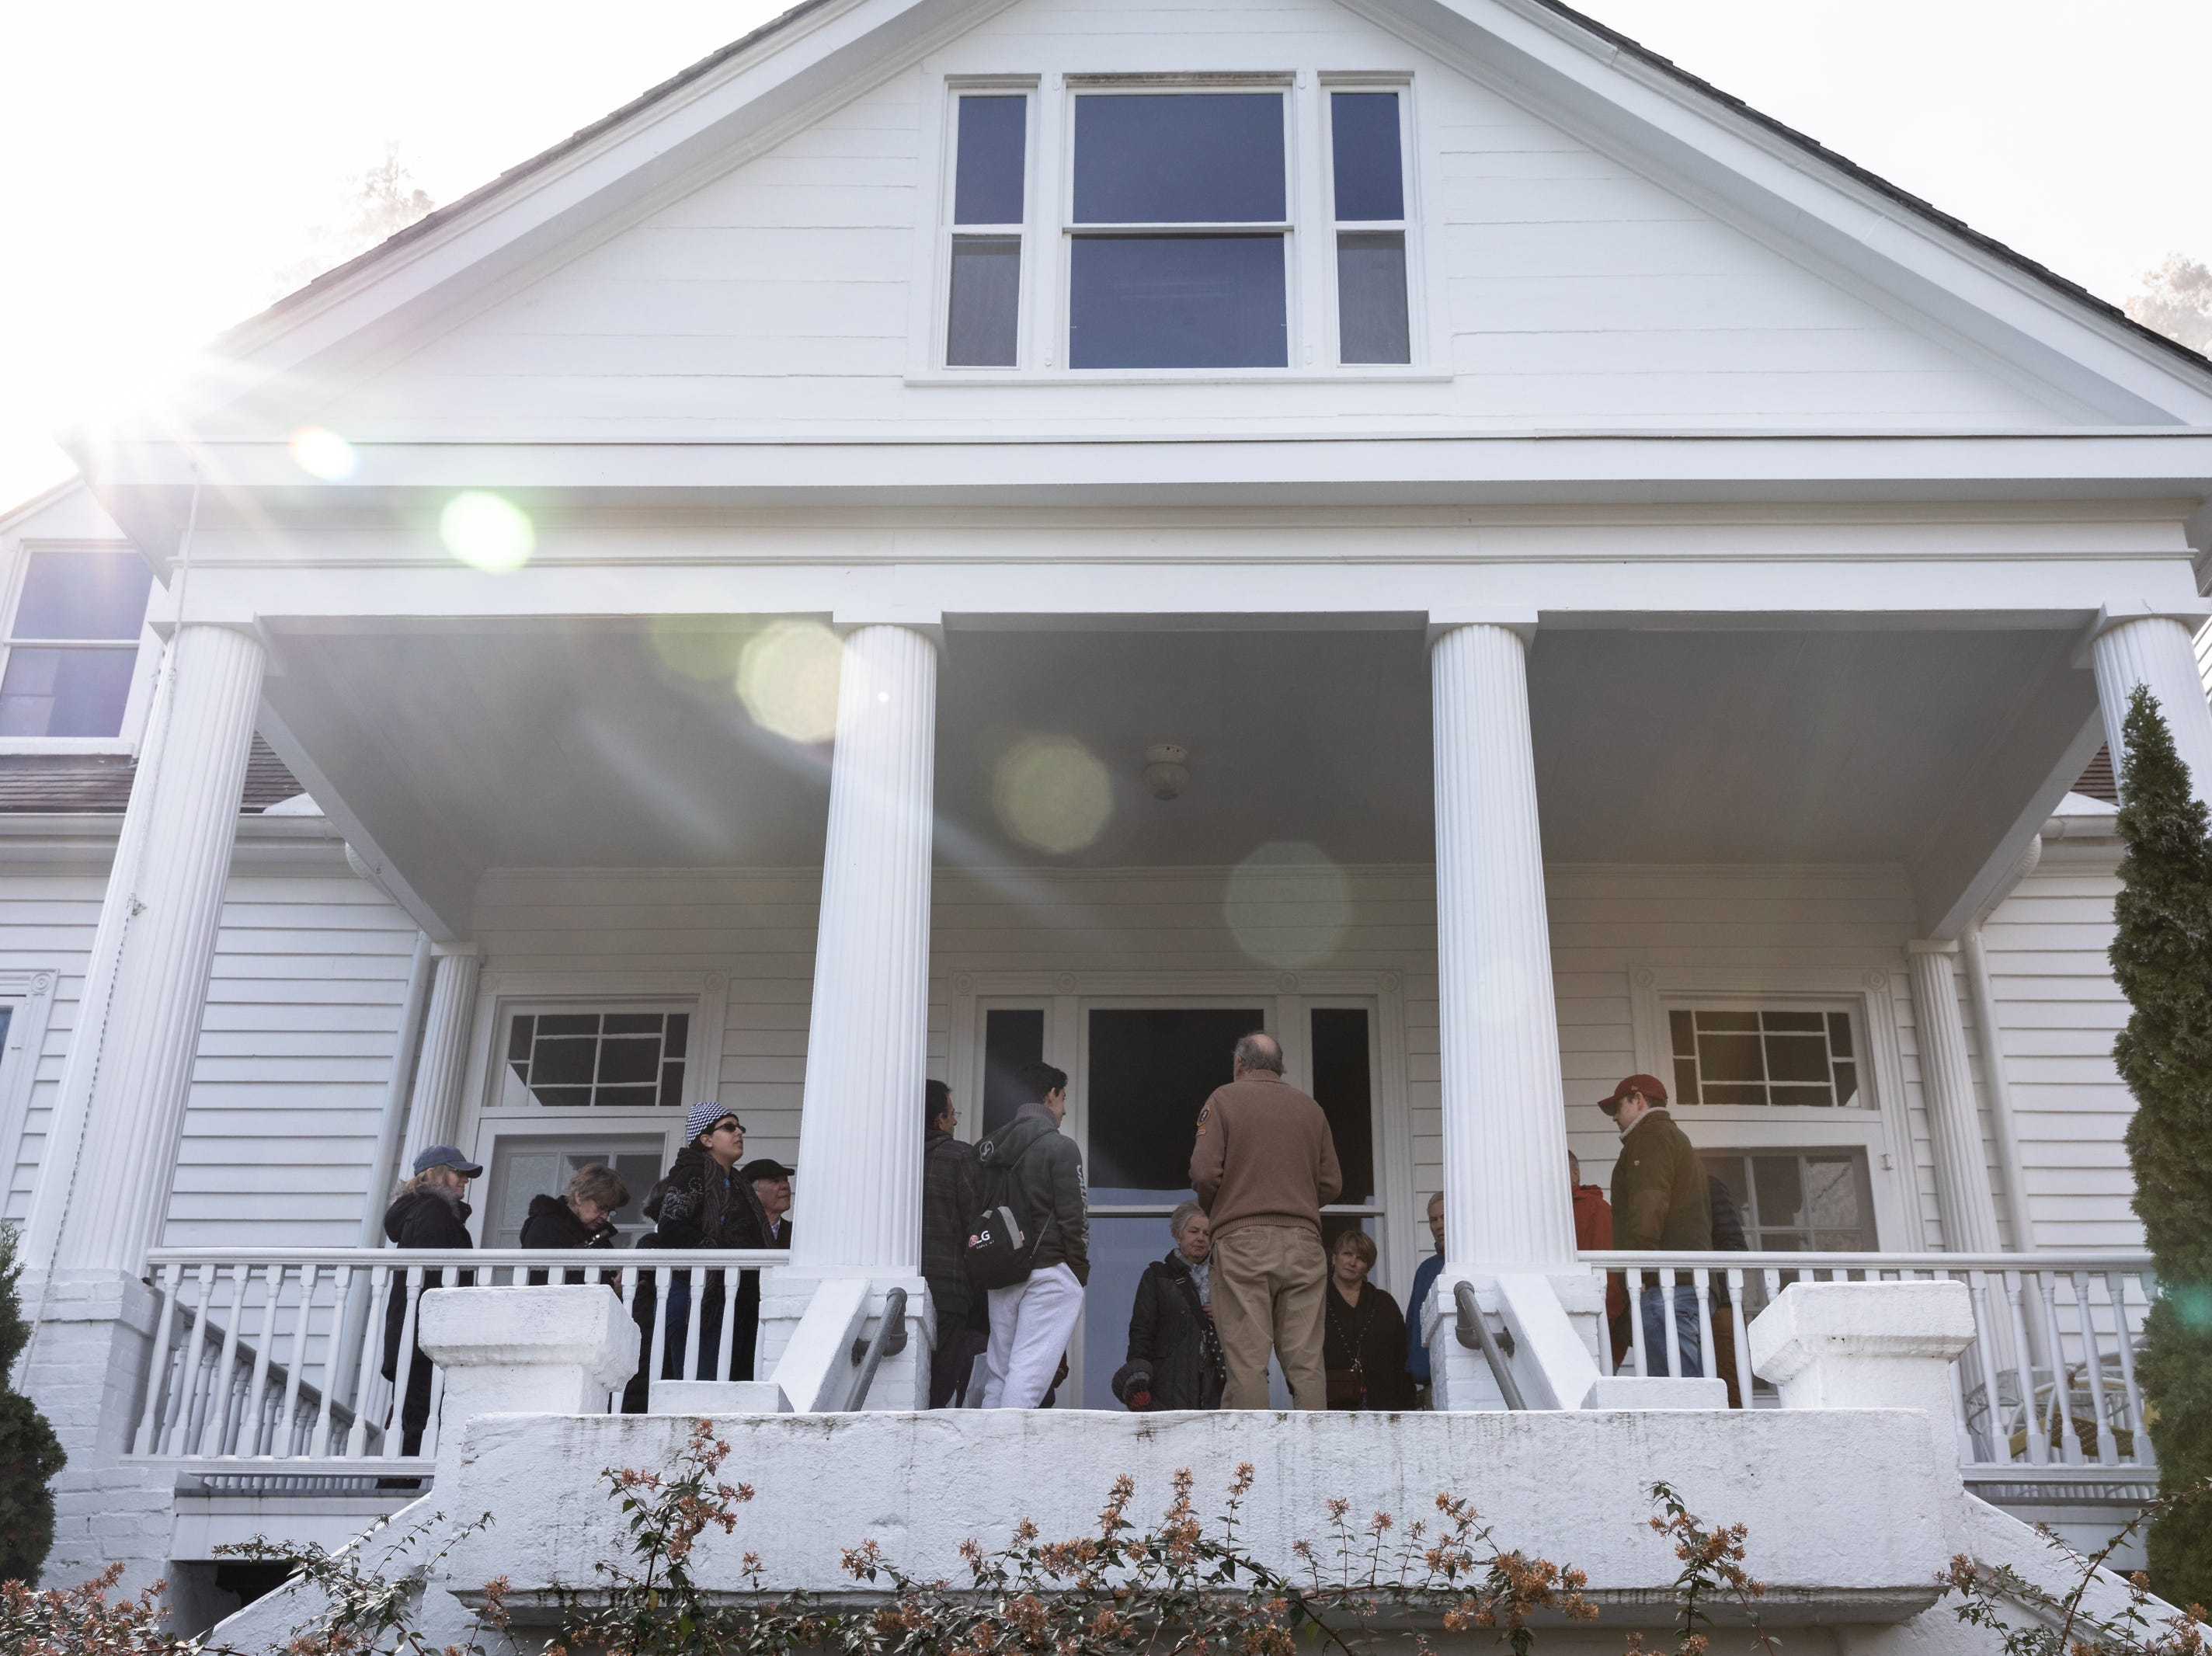 A group tours the Carl Sandburg home in Flat Rock where the park celebrated its 50th anniversary Nov. 24, 2018, with their Christmas at Connemara event featuring live music, storytellers and tours of the home.